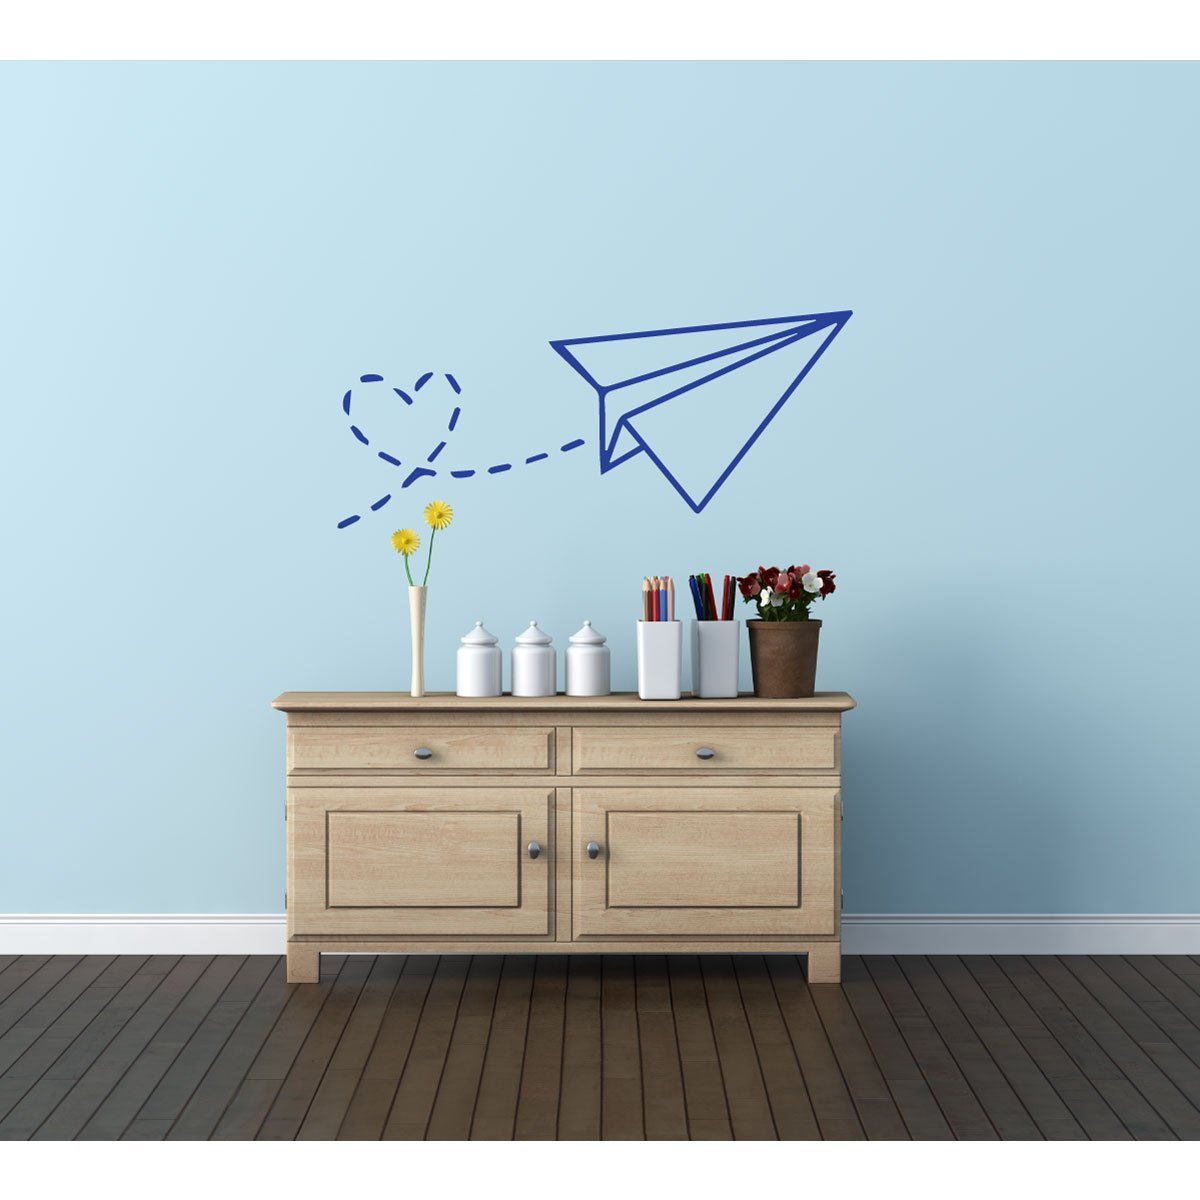 Wall Decals For Kids Rooms Paper Airplane Vinyl Wall